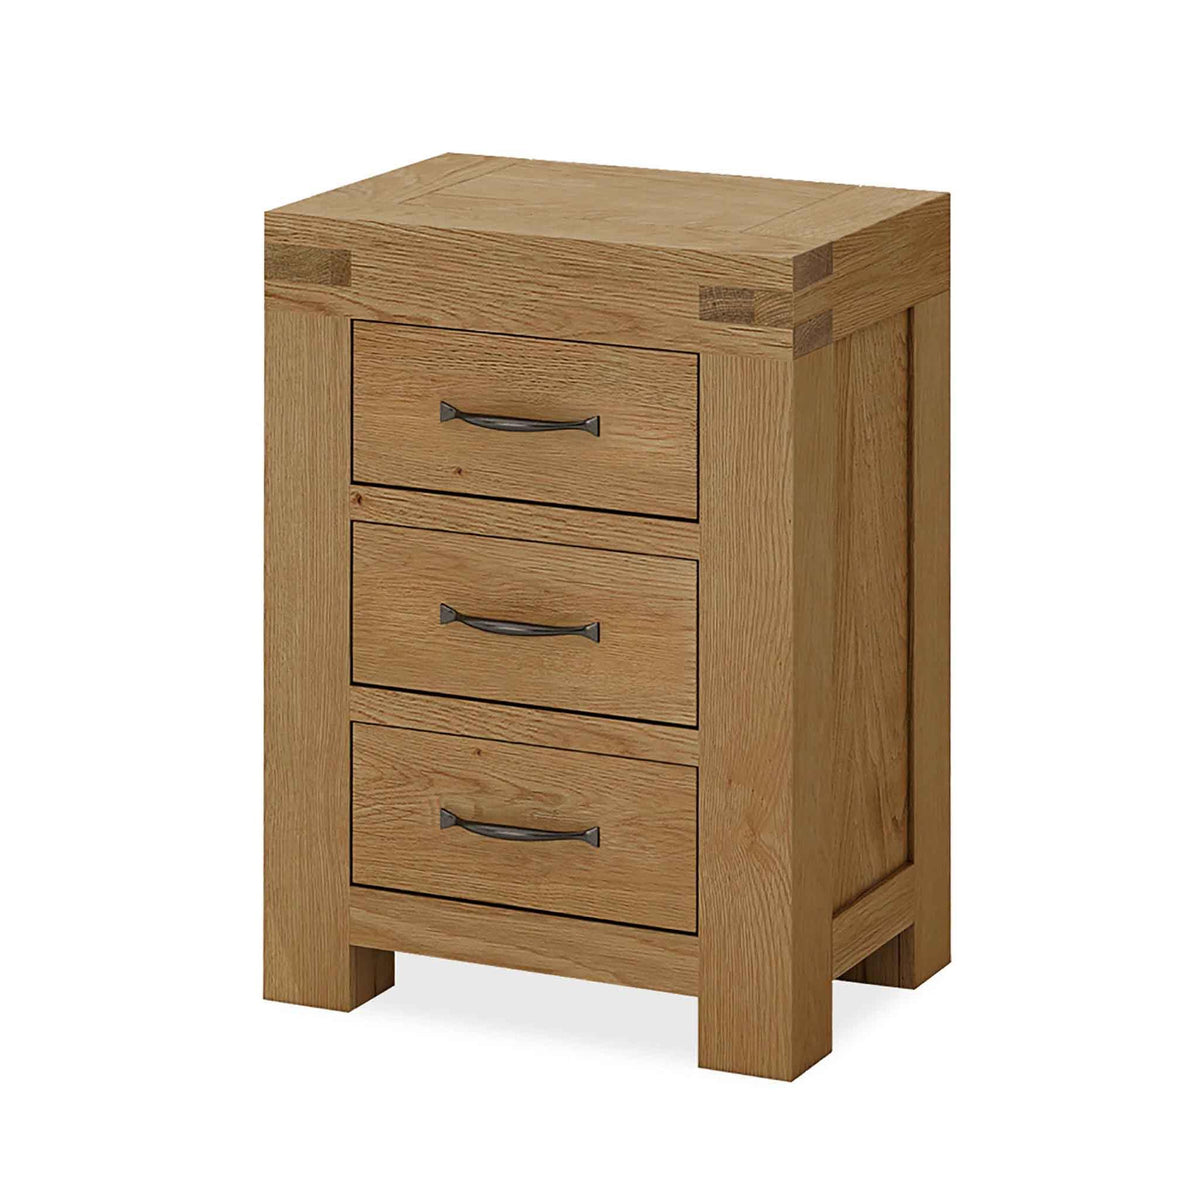 The Abbey Grande Wooden Oak 3 Drawer Bedside Table